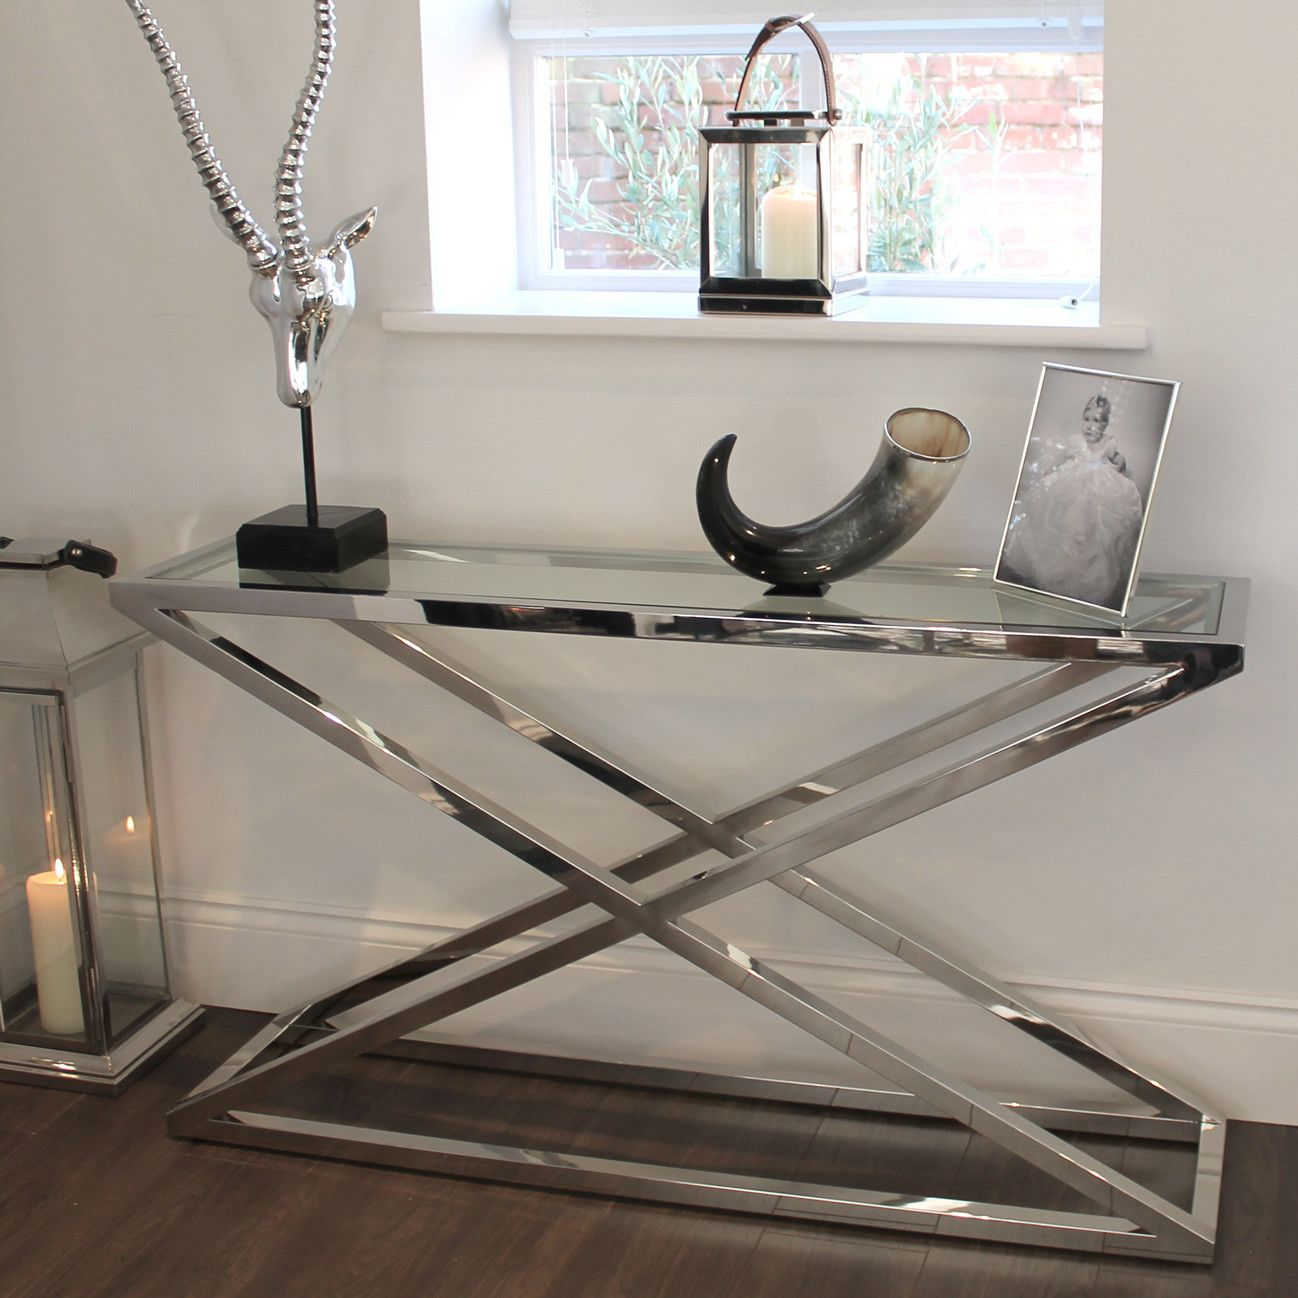 Glass Sofa Table Decor Trendy Creative Console Ideas For The Home Glass Furniture